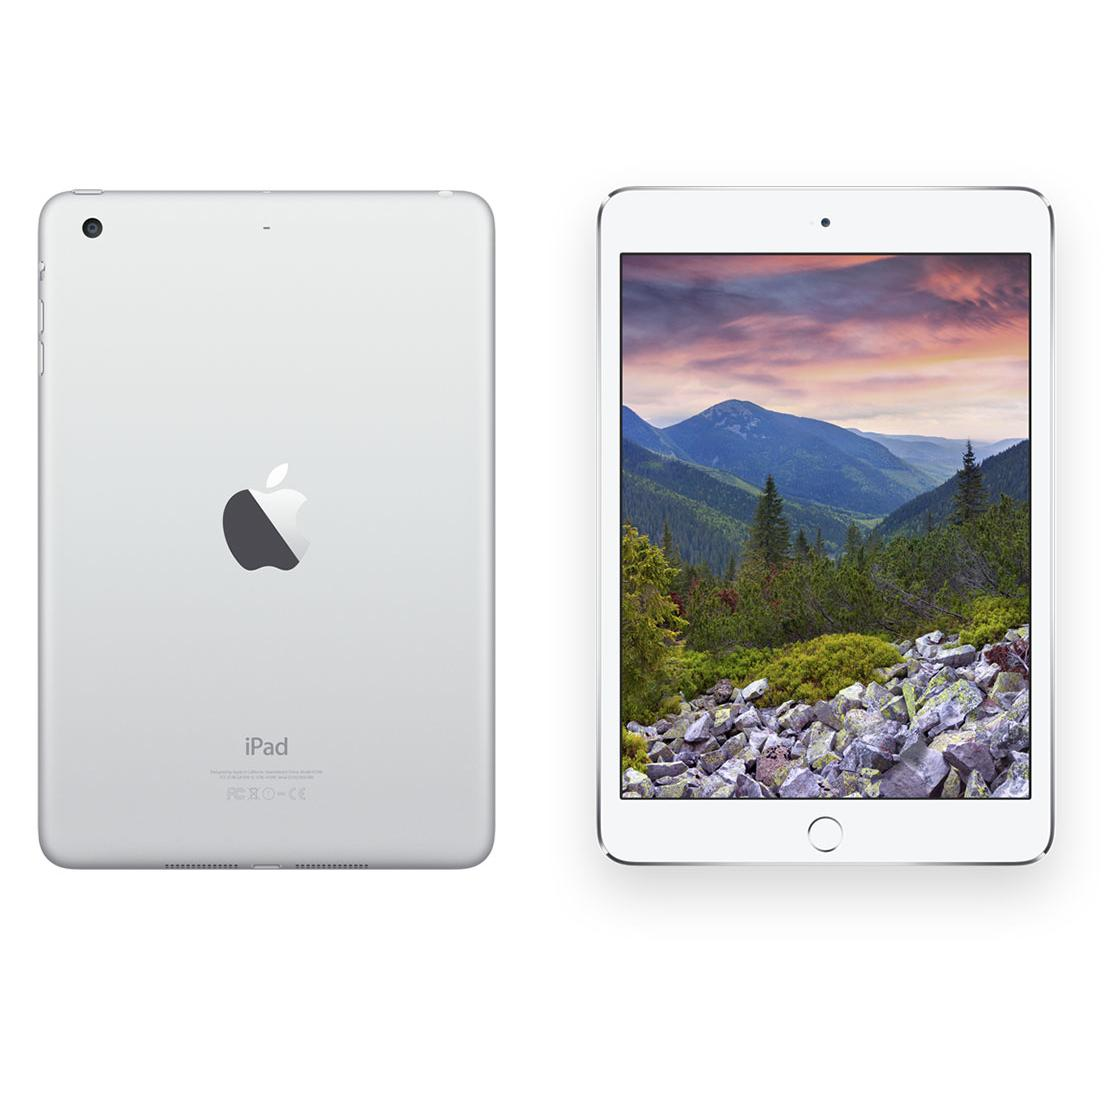 ipad mini 2 128 gb wlan lte silber ohne vertrag. Black Bedroom Furniture Sets. Home Design Ideas